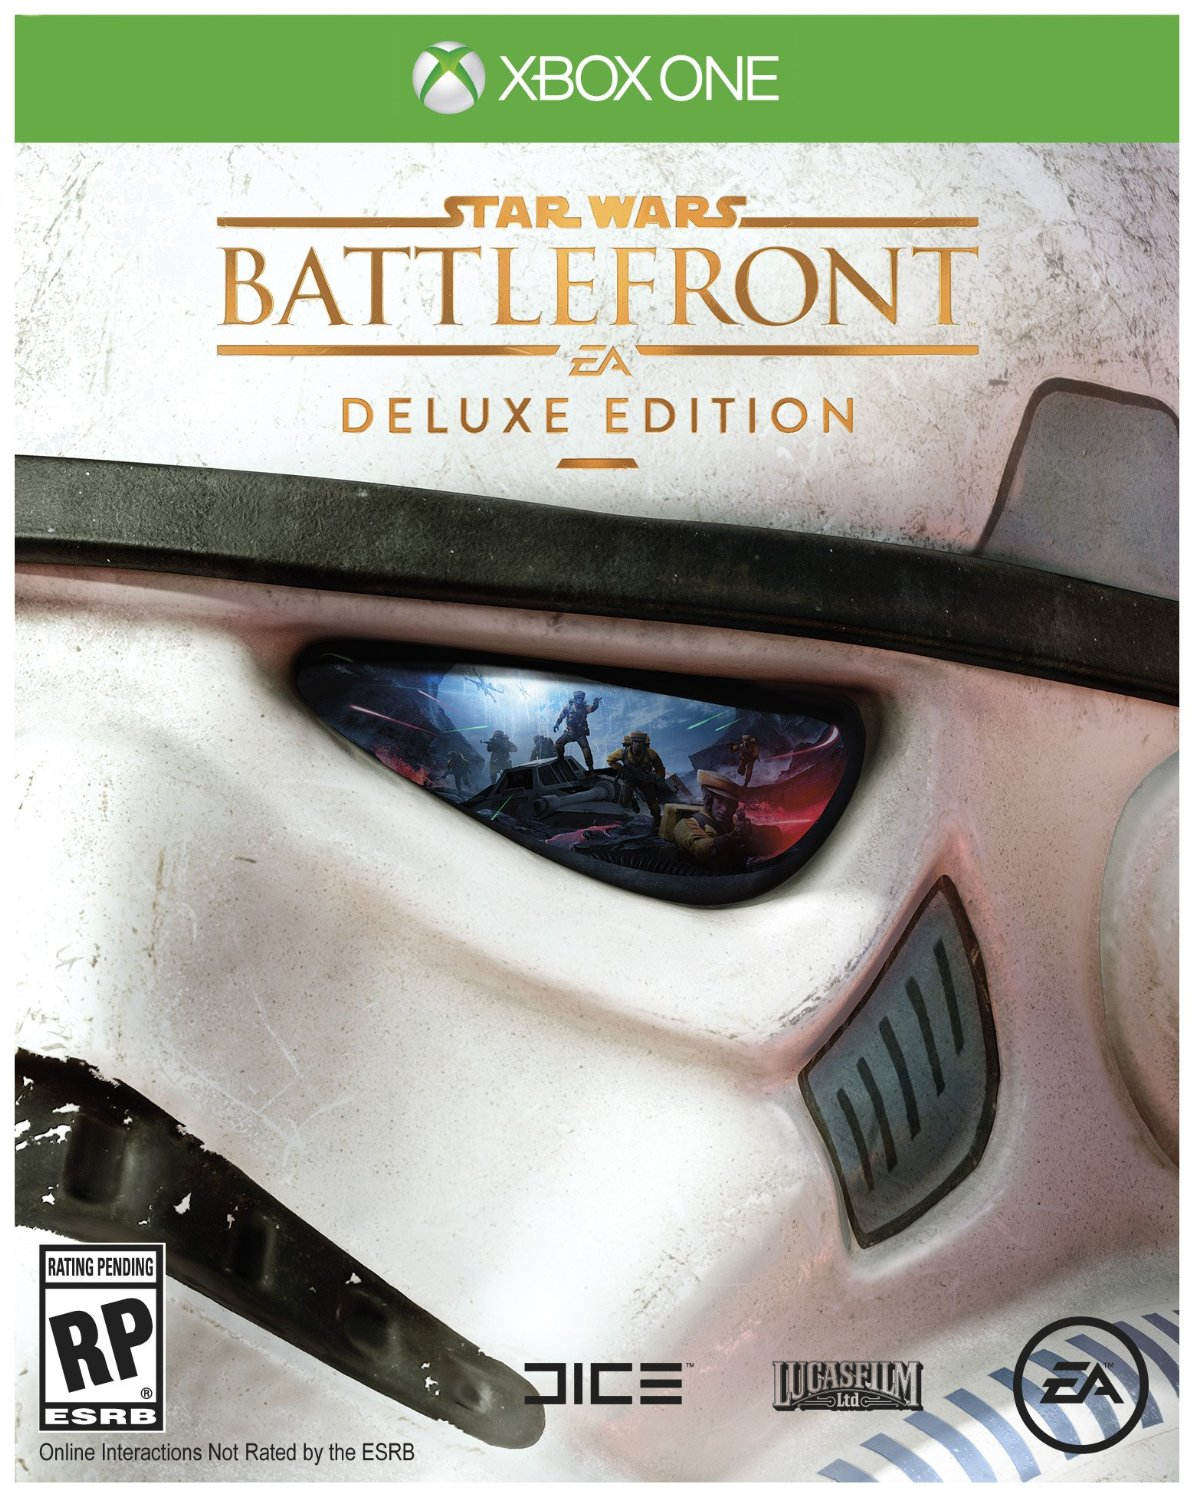 star wars battlefront campaign